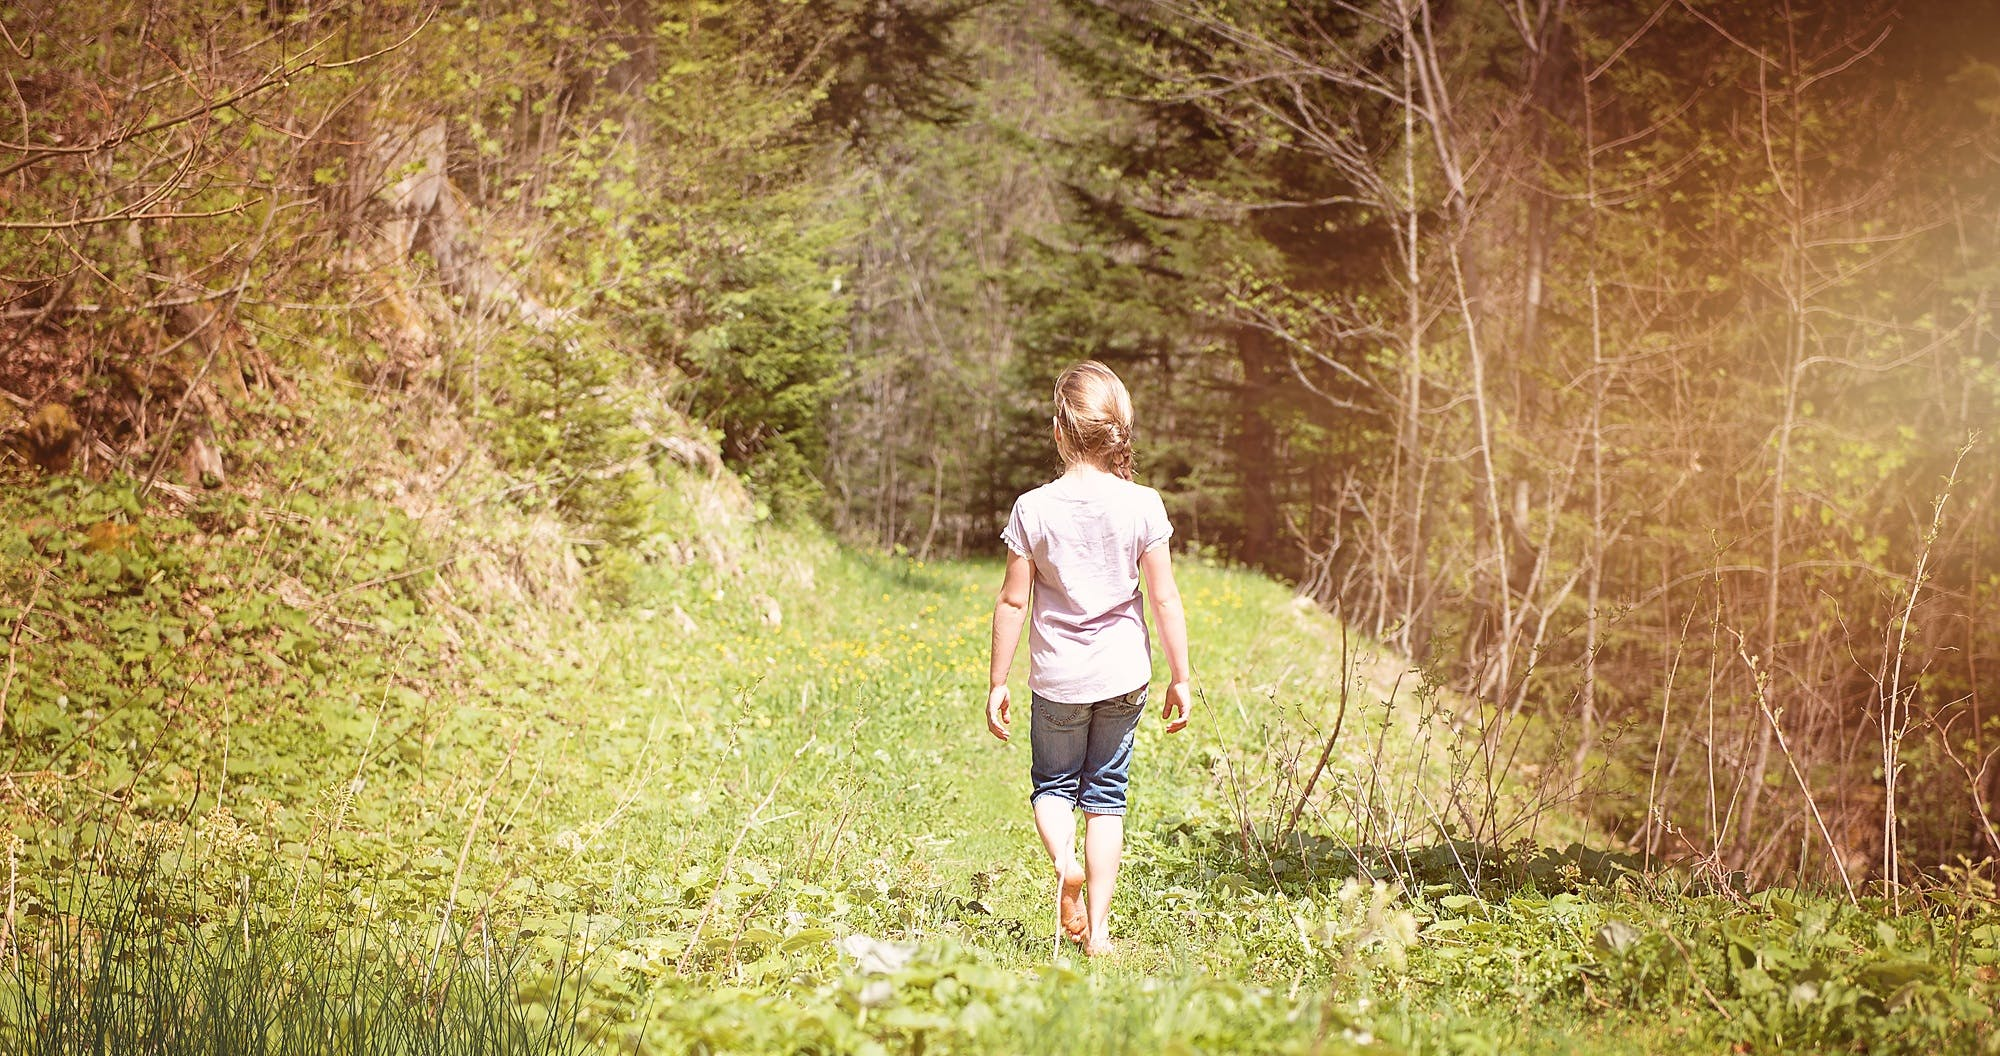 Girl Waling Across the Forest